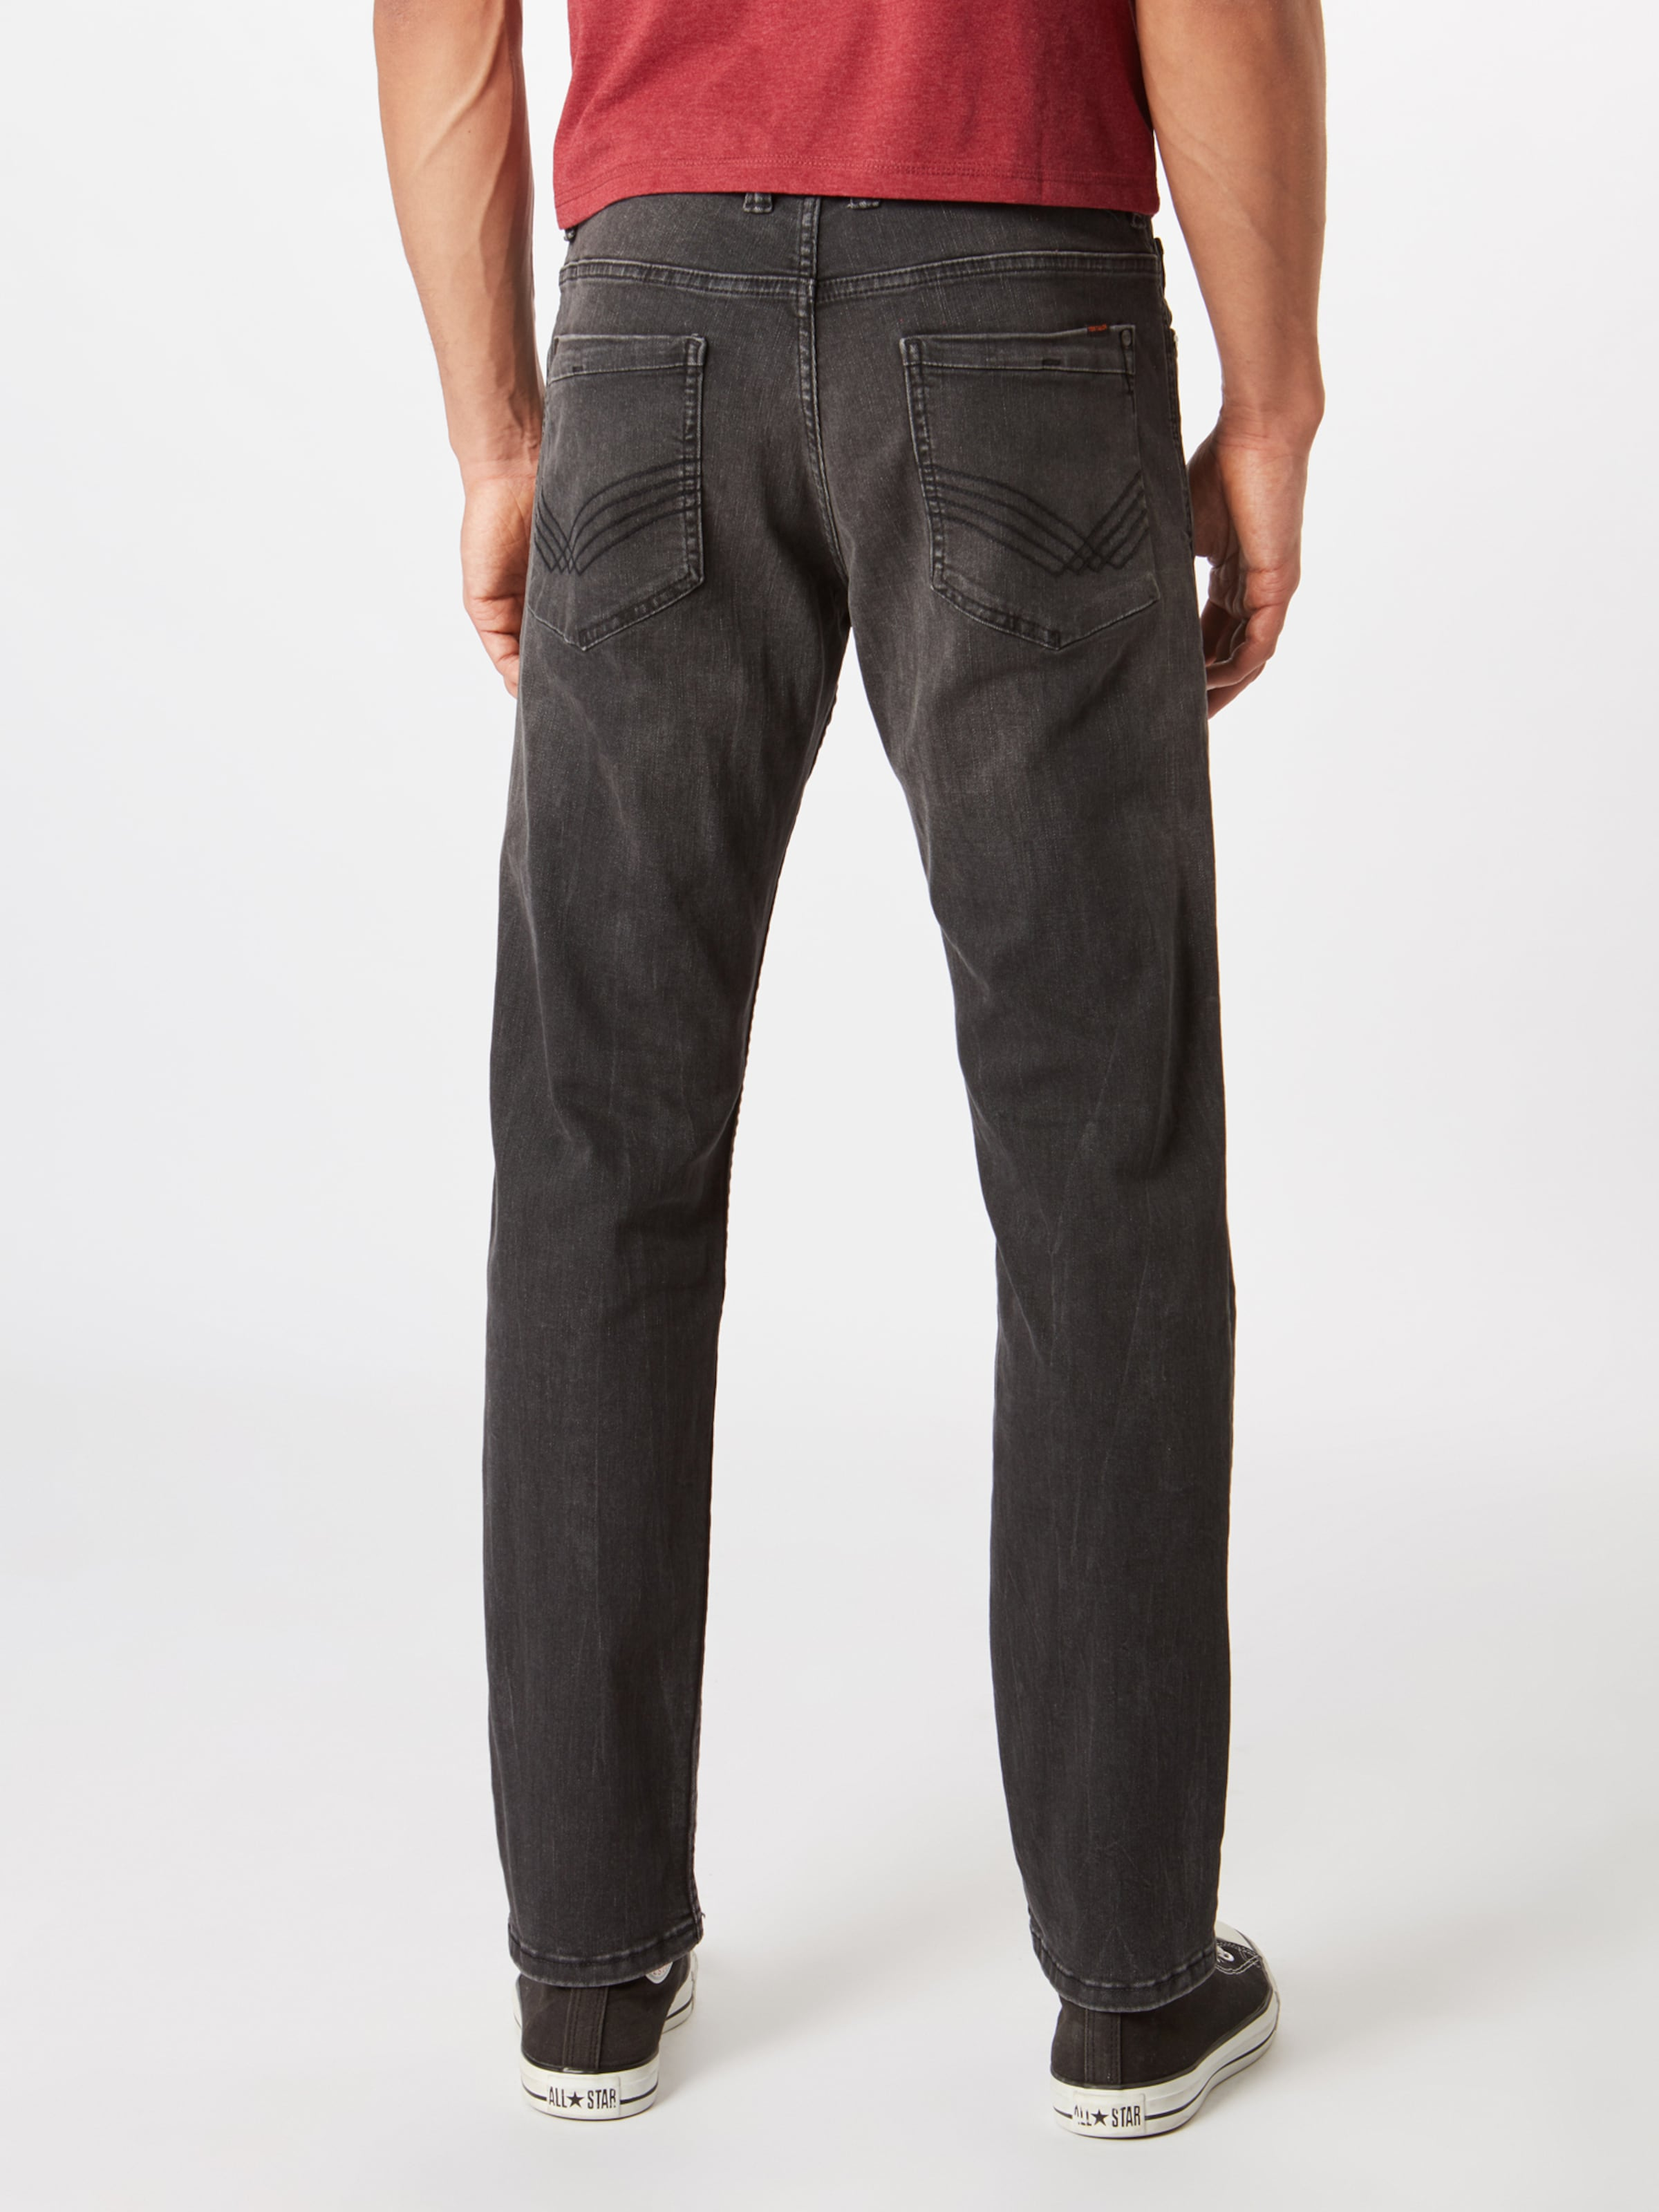 Jean En Denim Tom Tailor Noir 'marvin' 0OPwXk8n